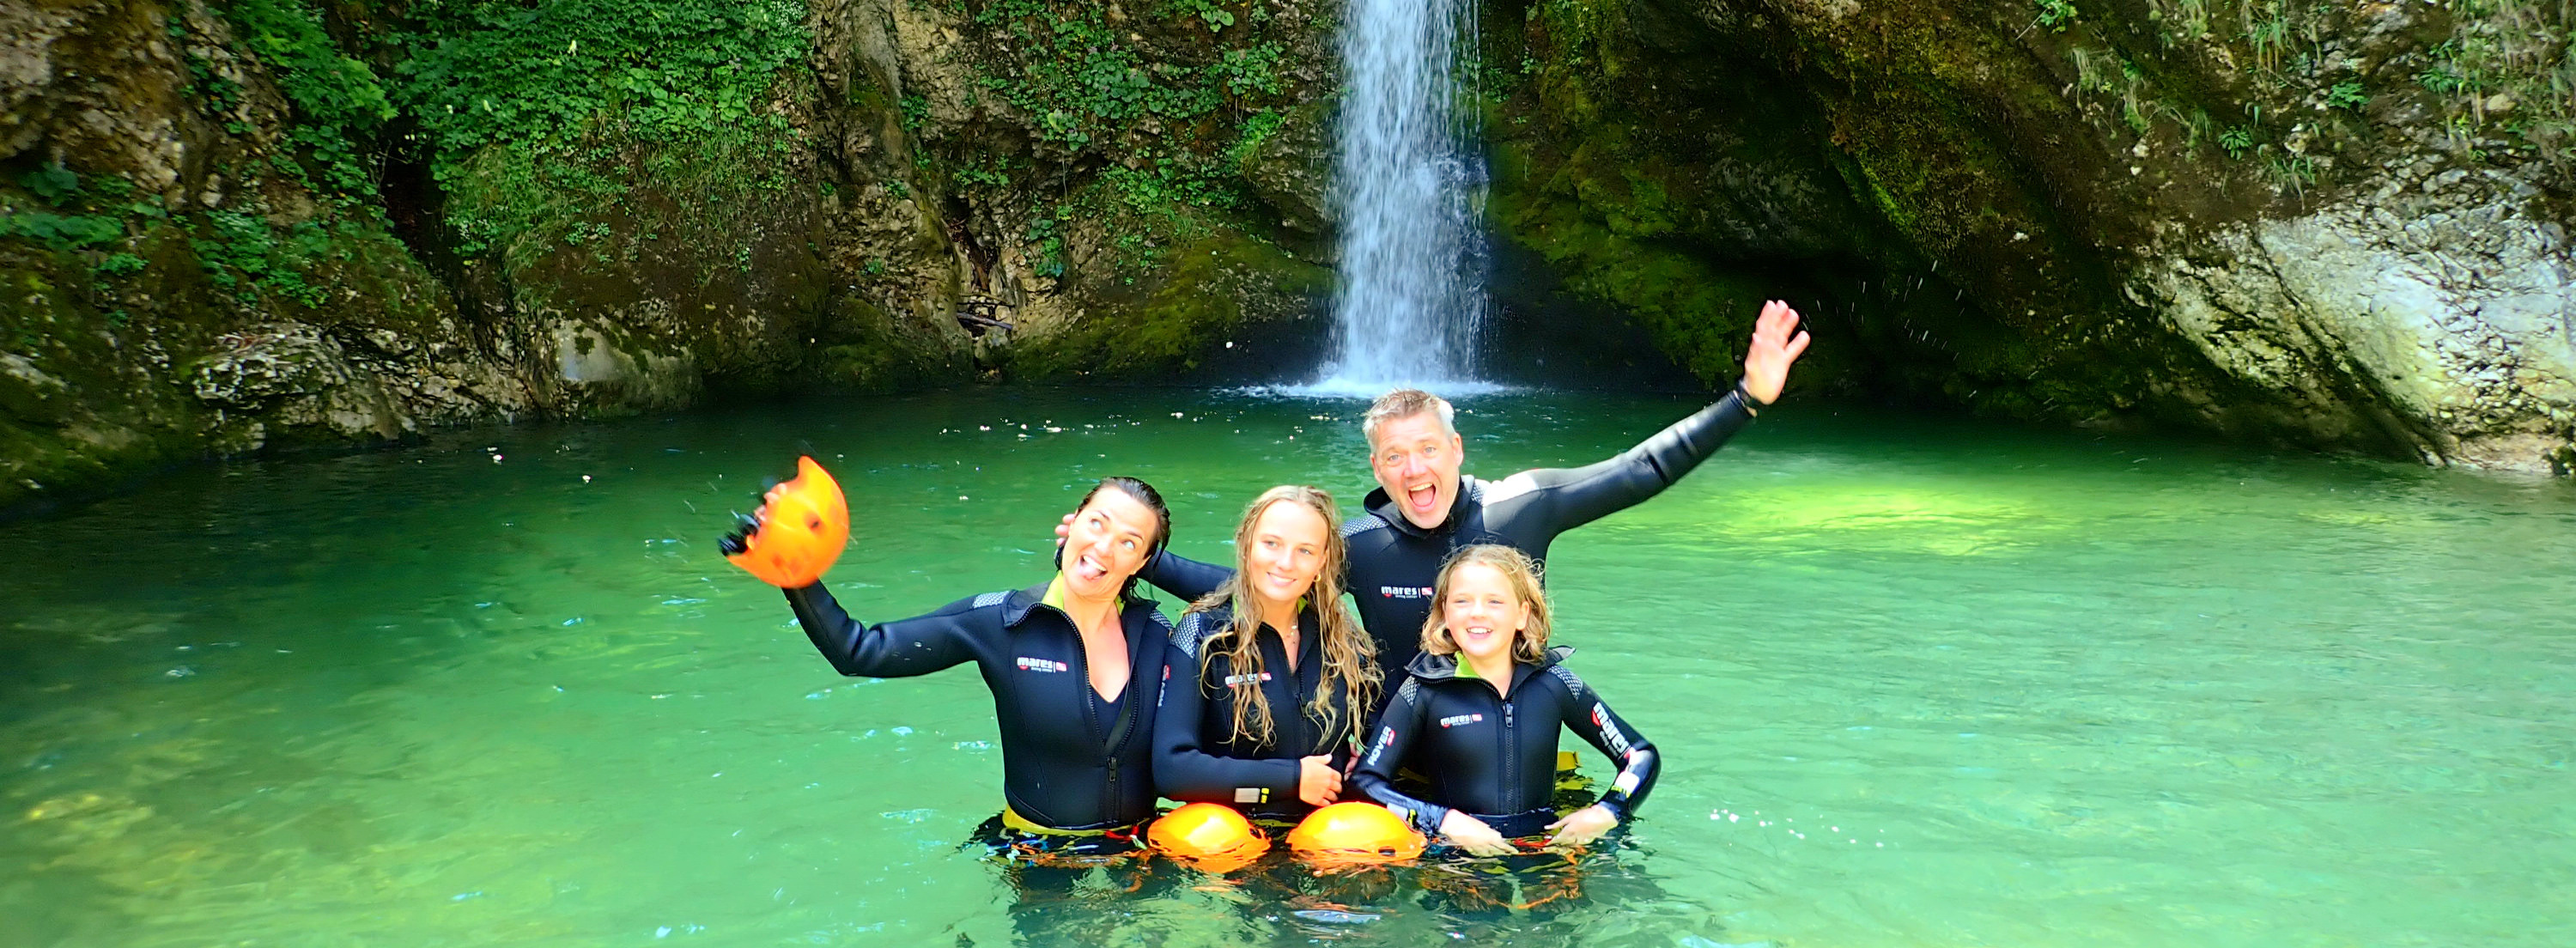 Family-canyoning-bled_edited